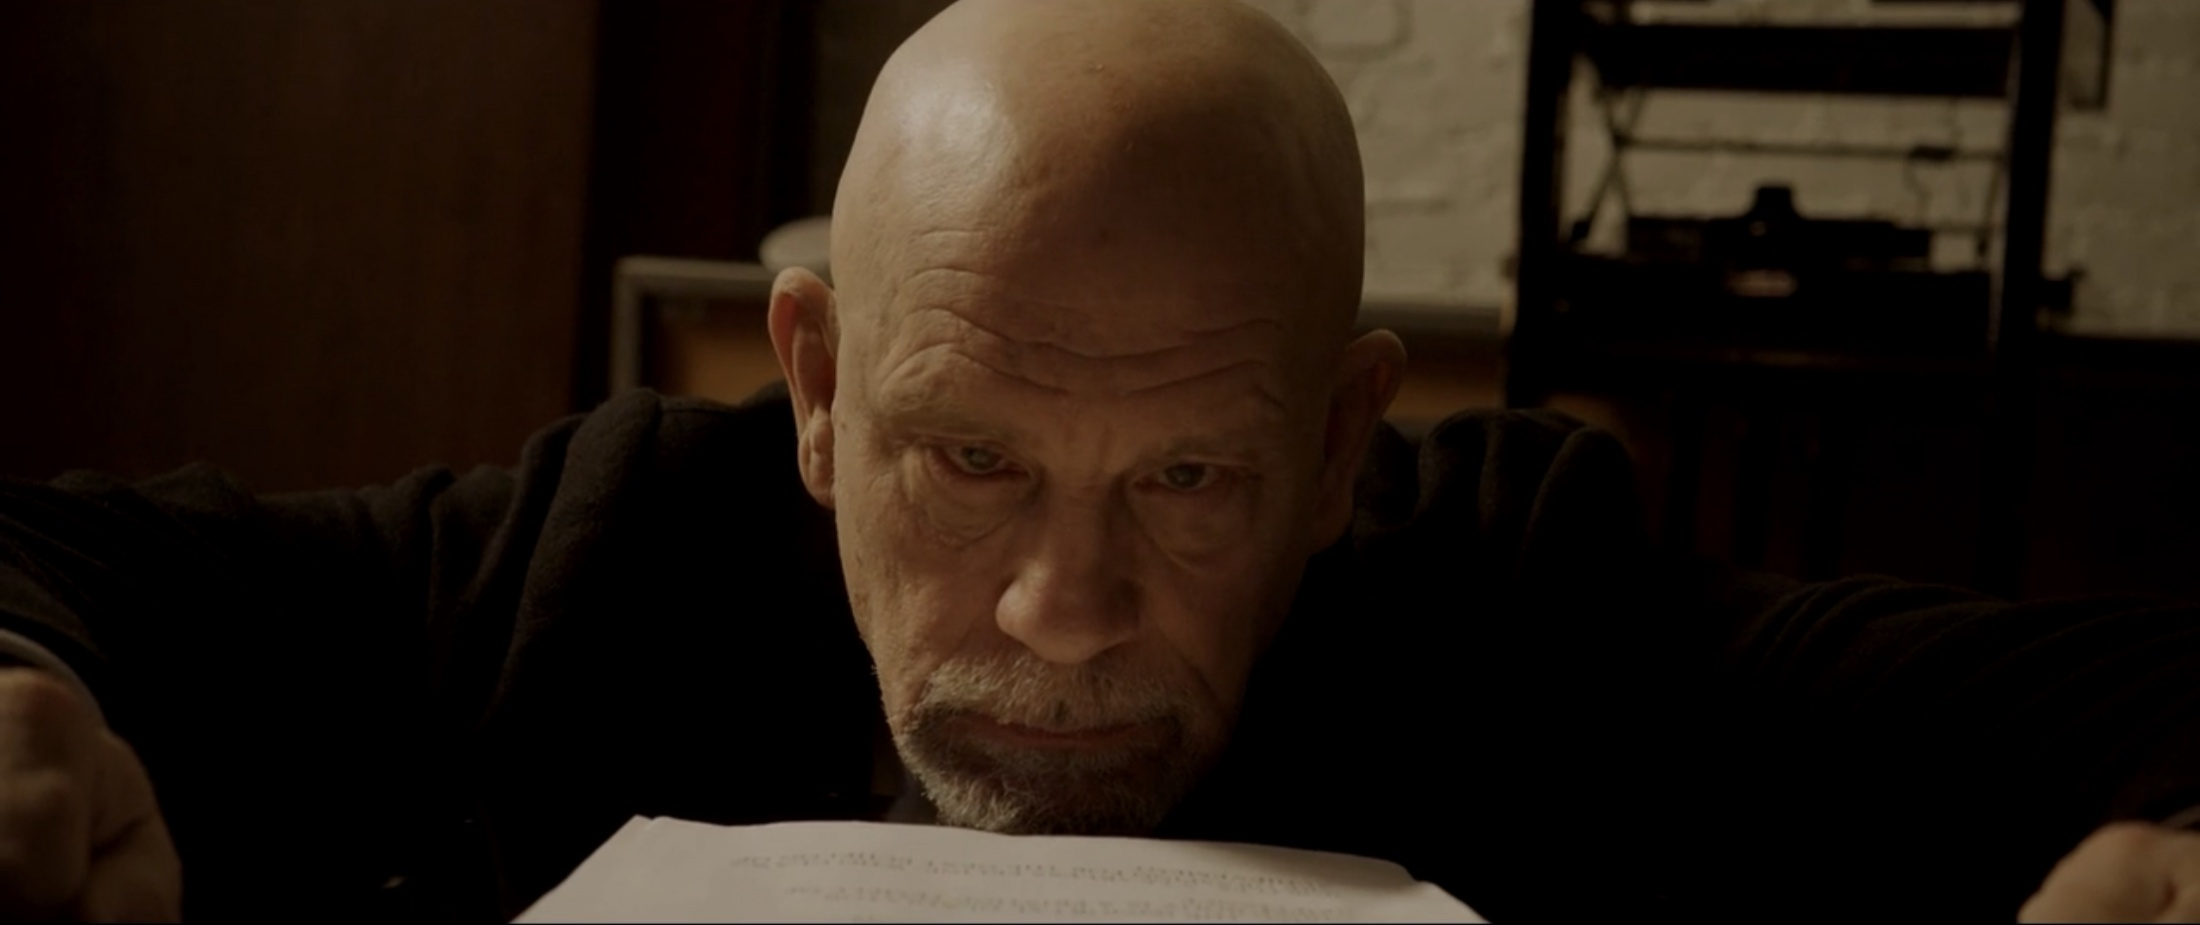 Image Media for Teasing John Malkovich